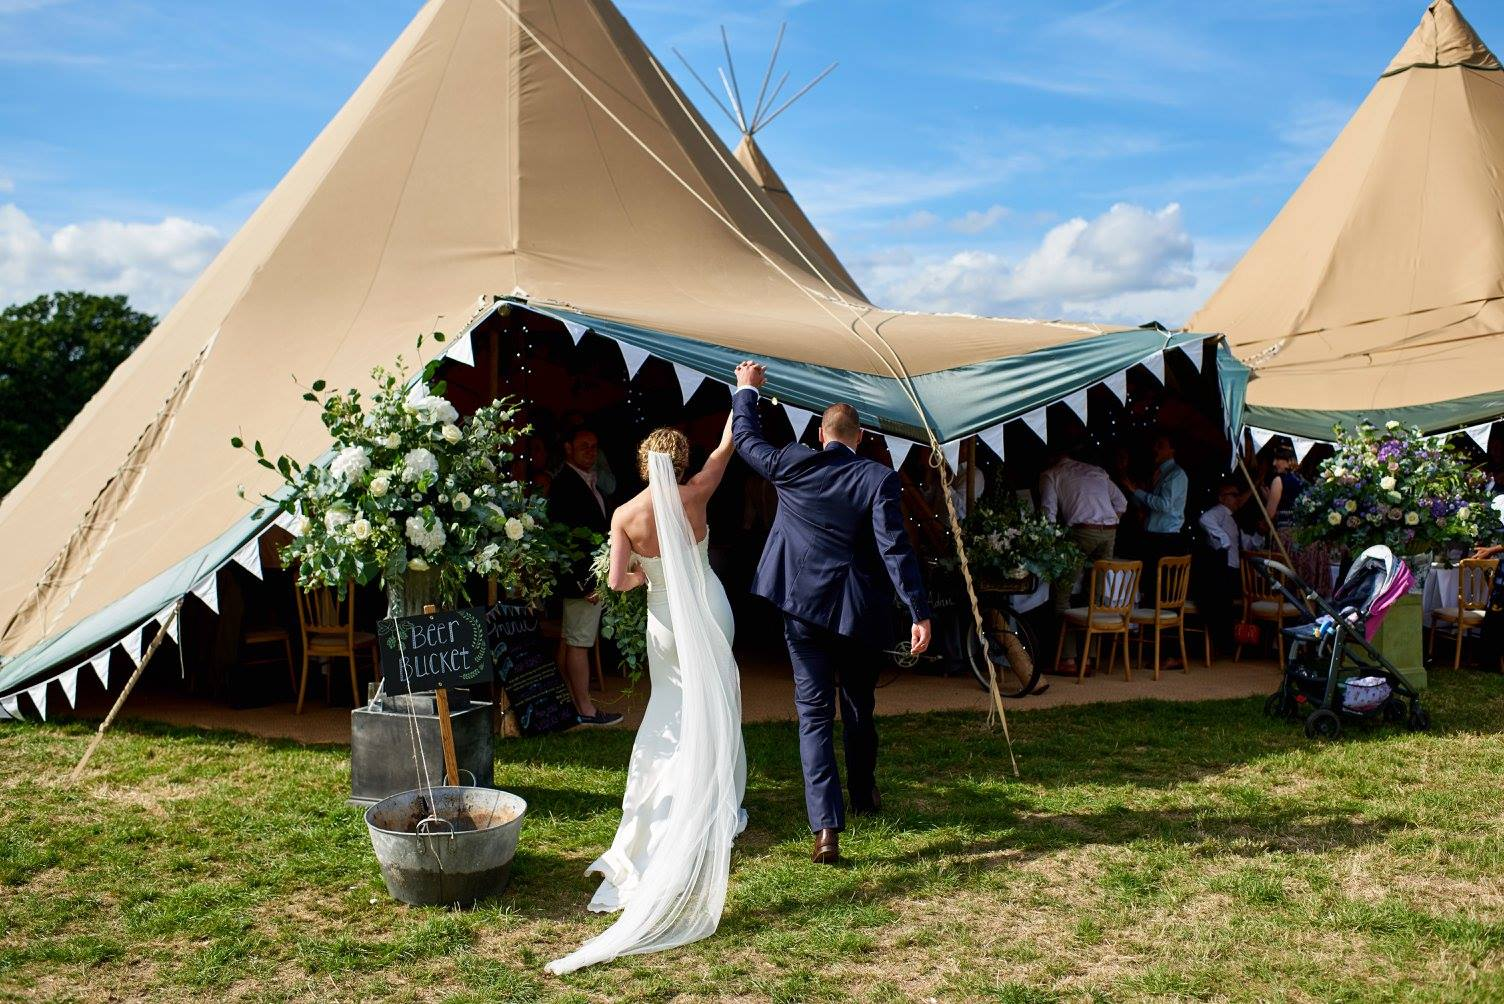 Beautiful World Tents Tipi Wedding Open Days